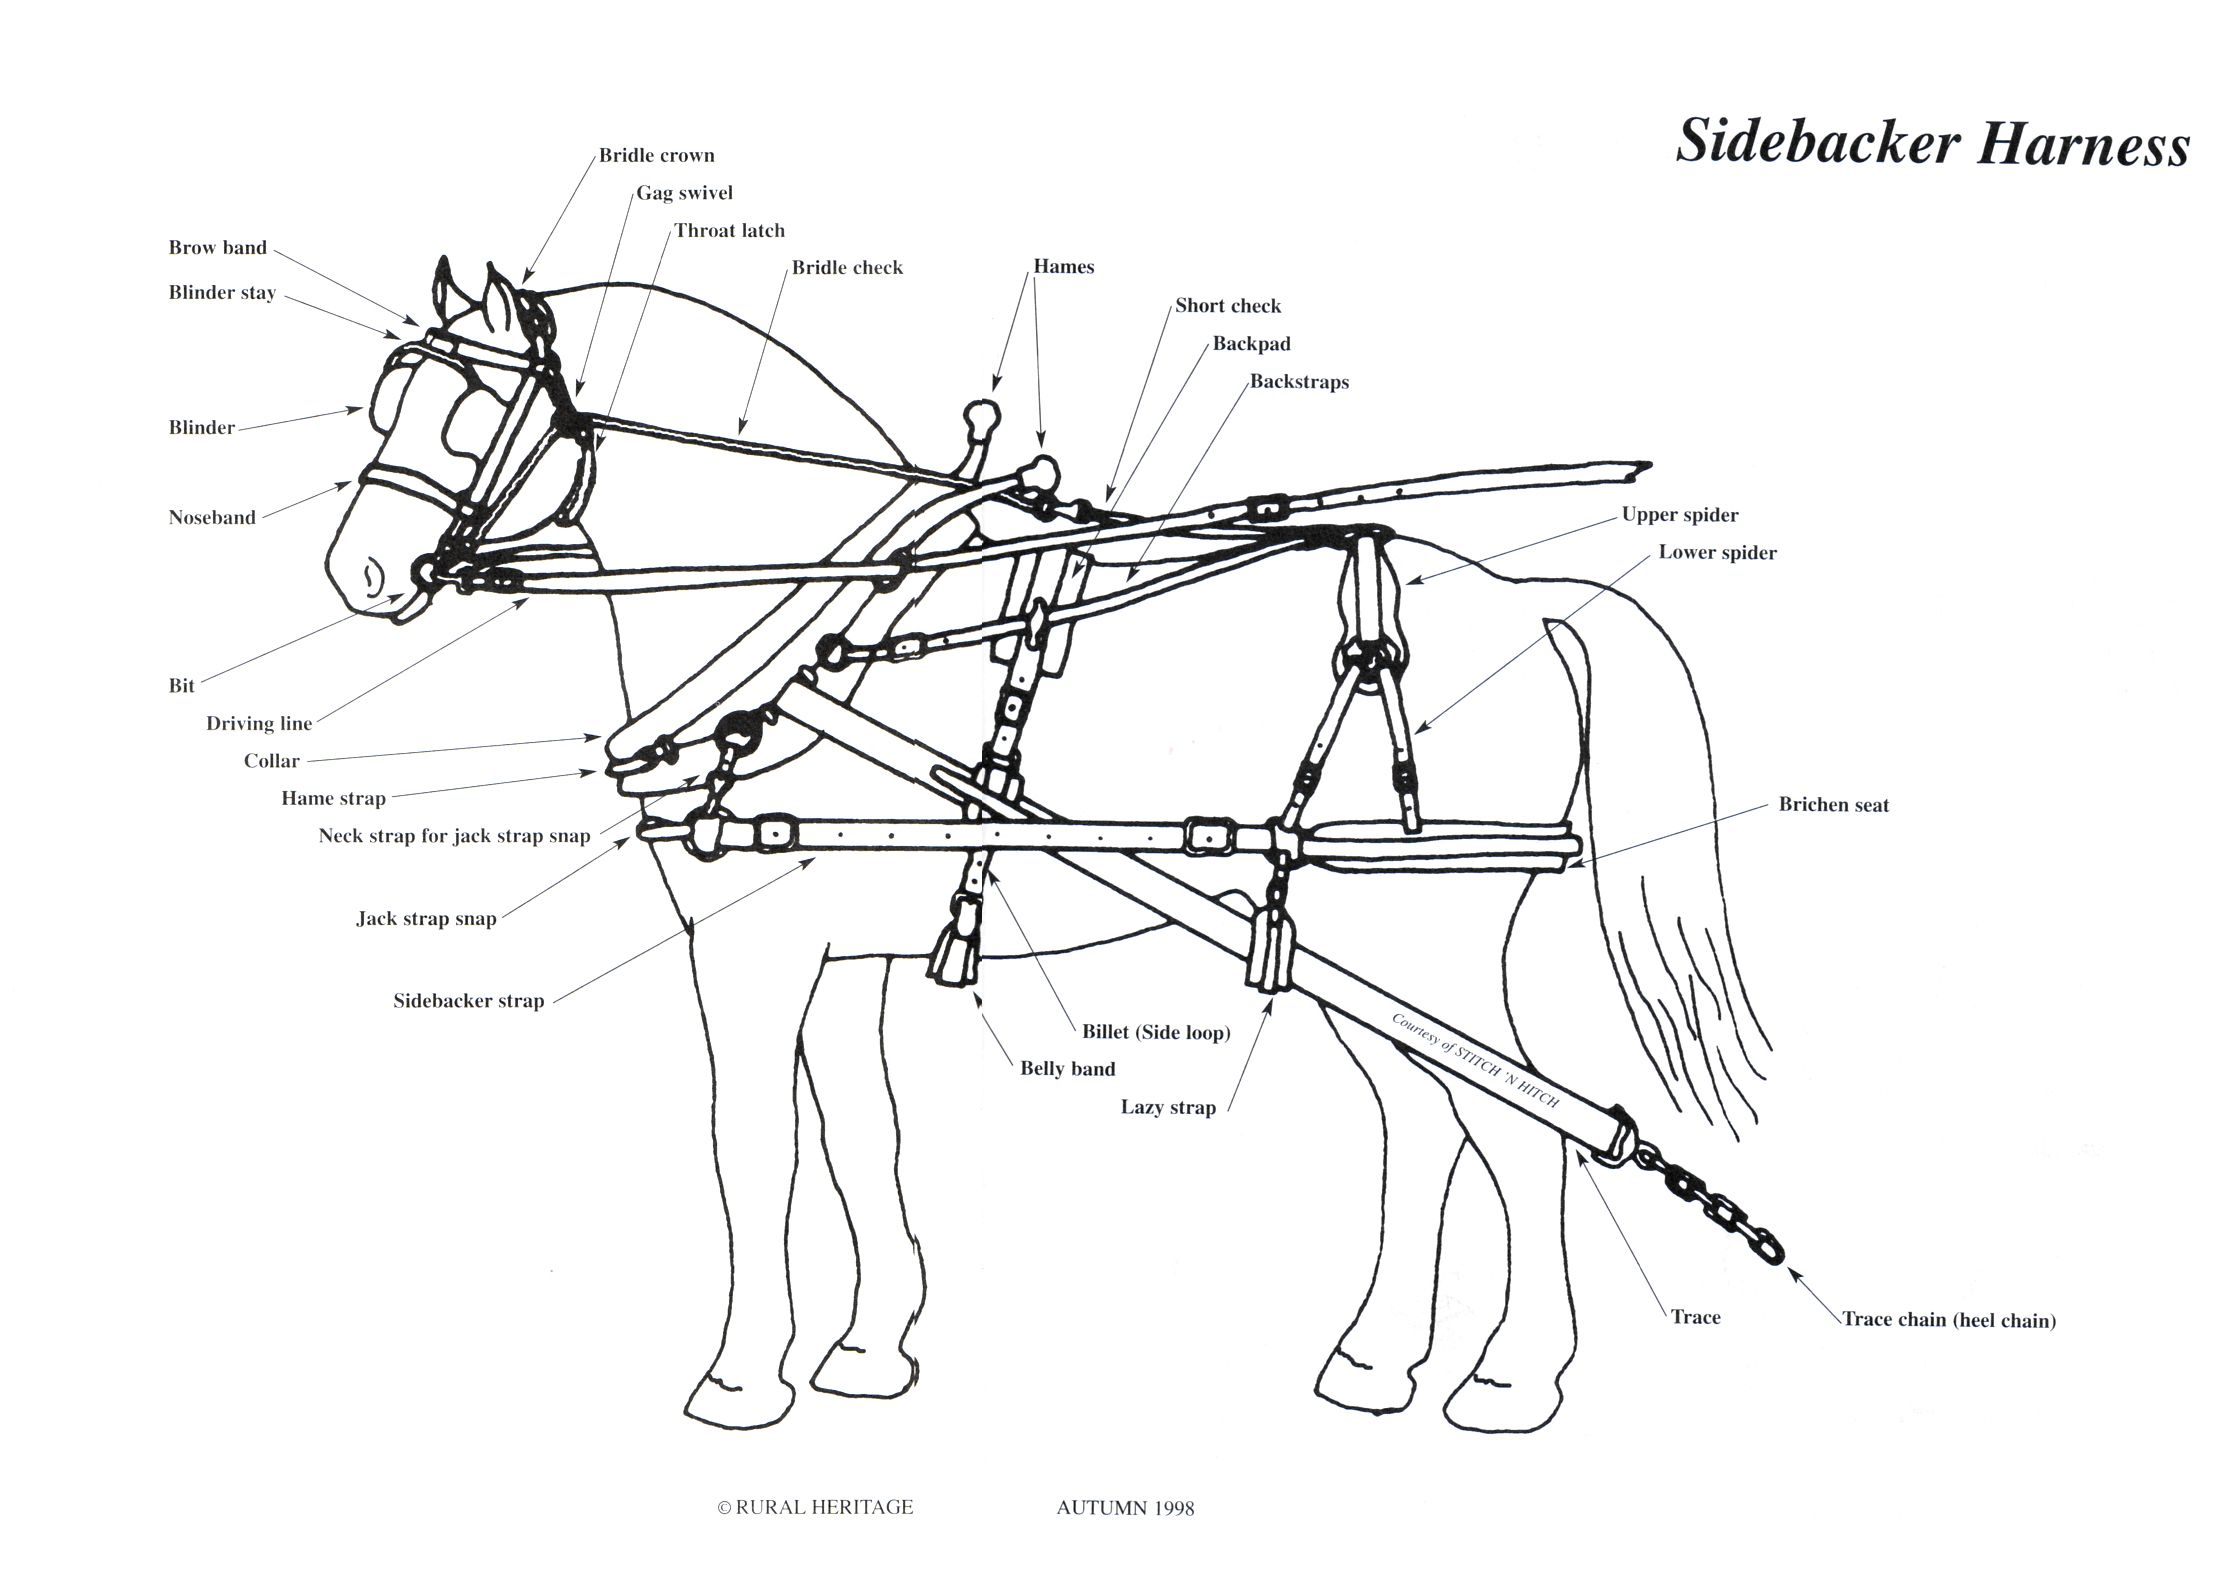 Sidebacker Harness Illustrations With Images